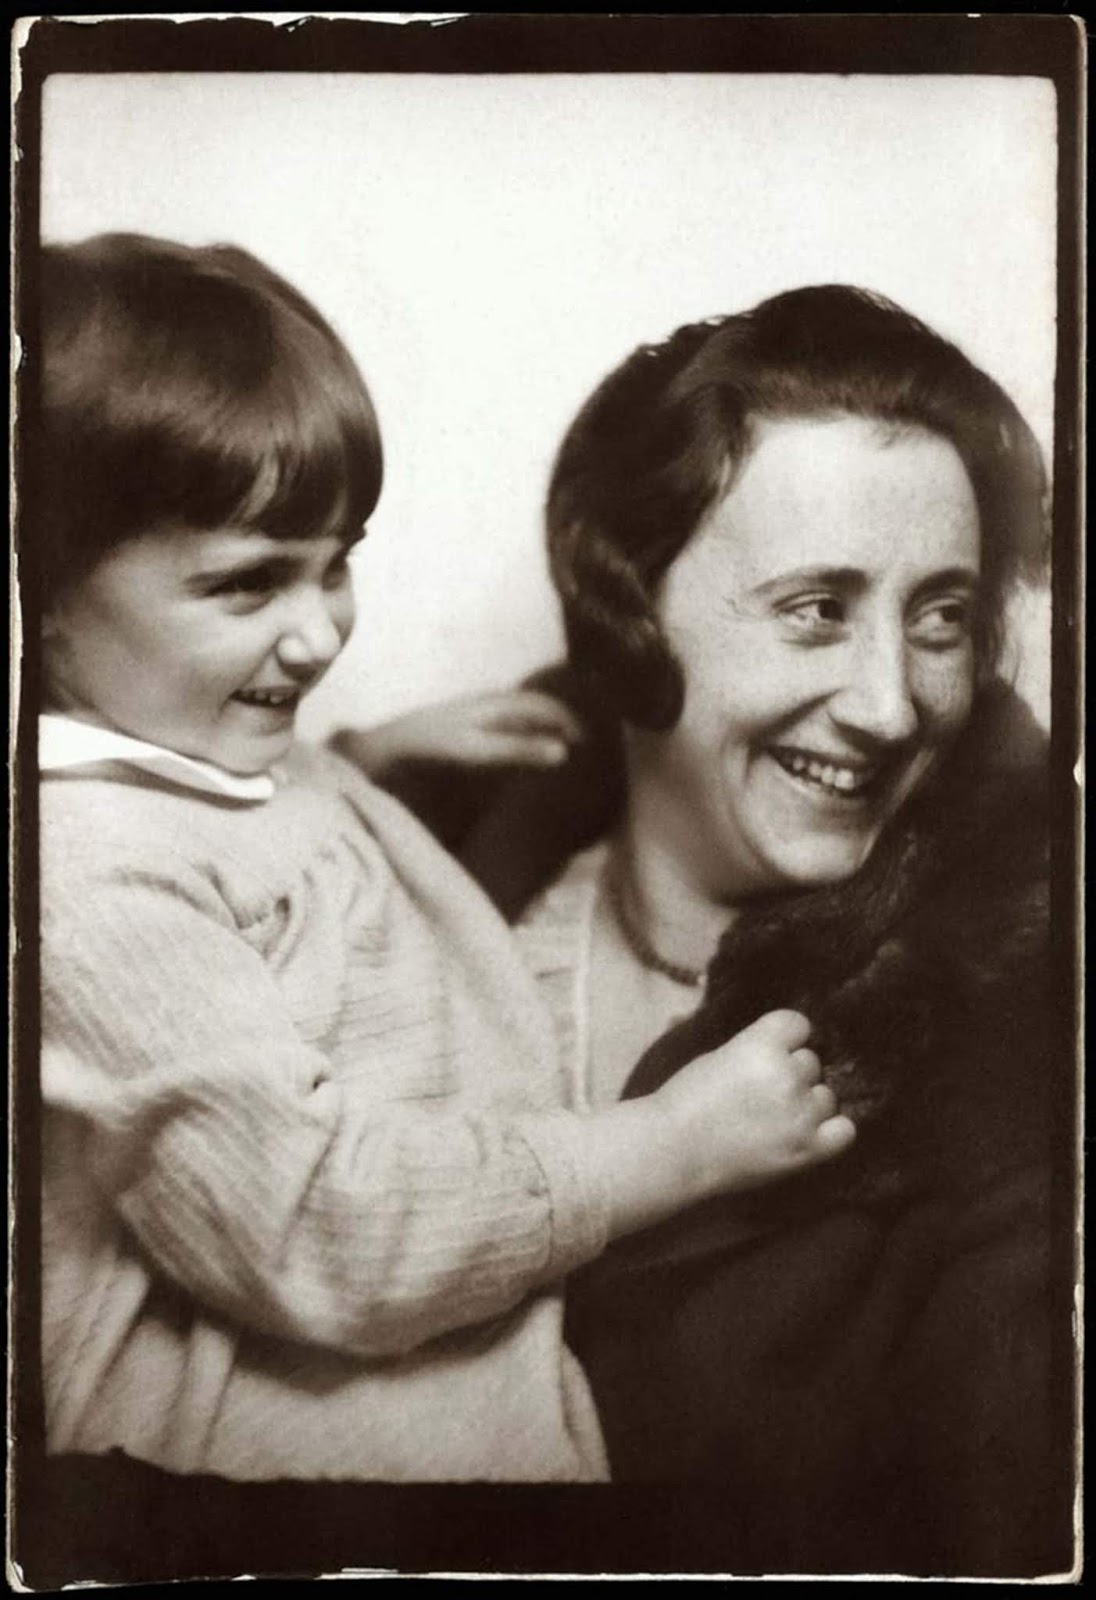 Anne Frank, with her mother, Edith, circa 1932-33.